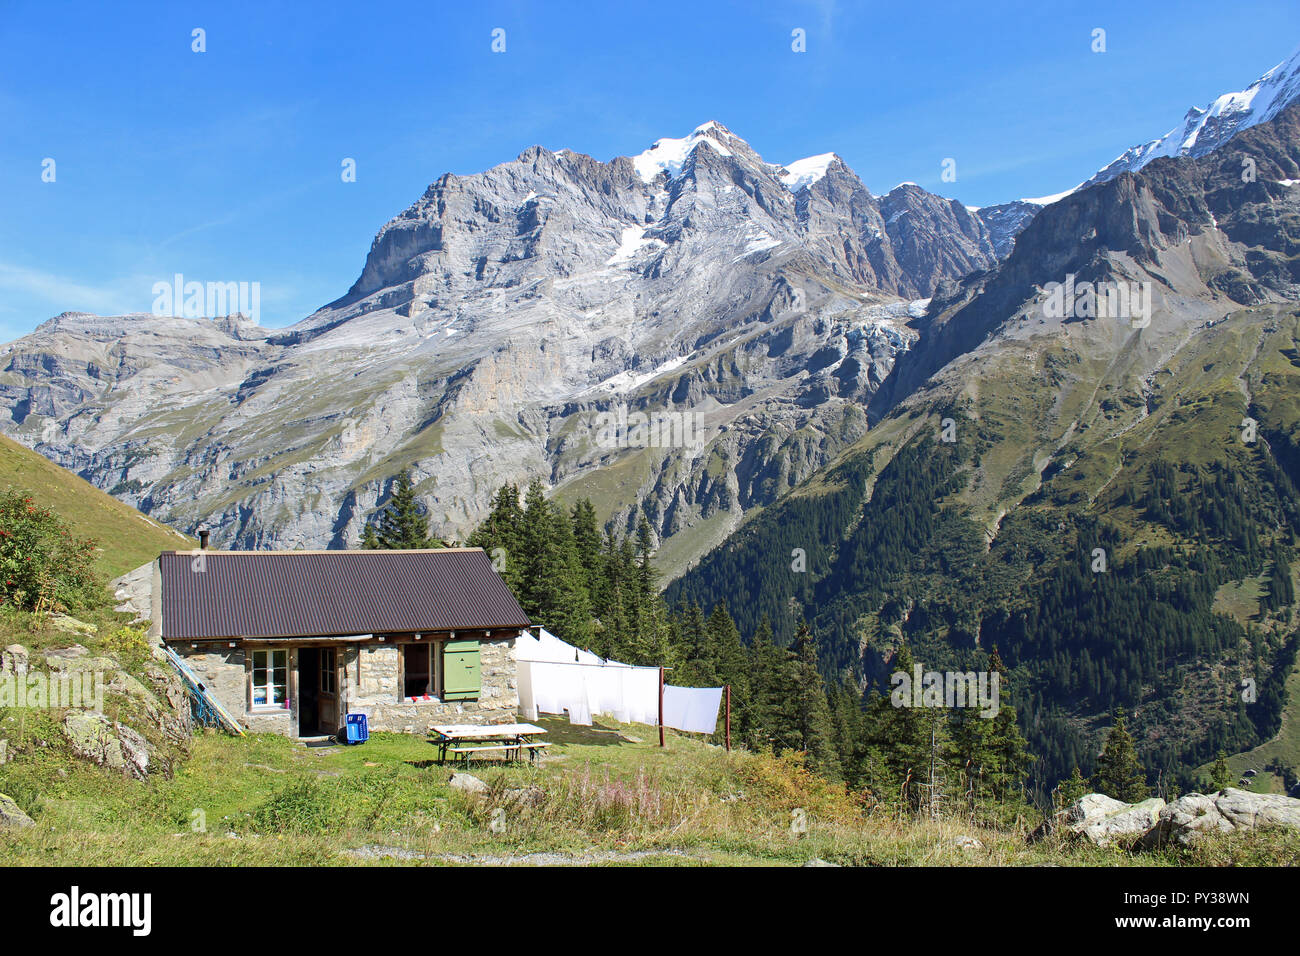 Laundry drying at the remote Obersteinberg alp in upper Lauterbrunnen Valley, Jungfrau region, Switzerland. Can be reached only on foot - 2 hours hike Stock Photo